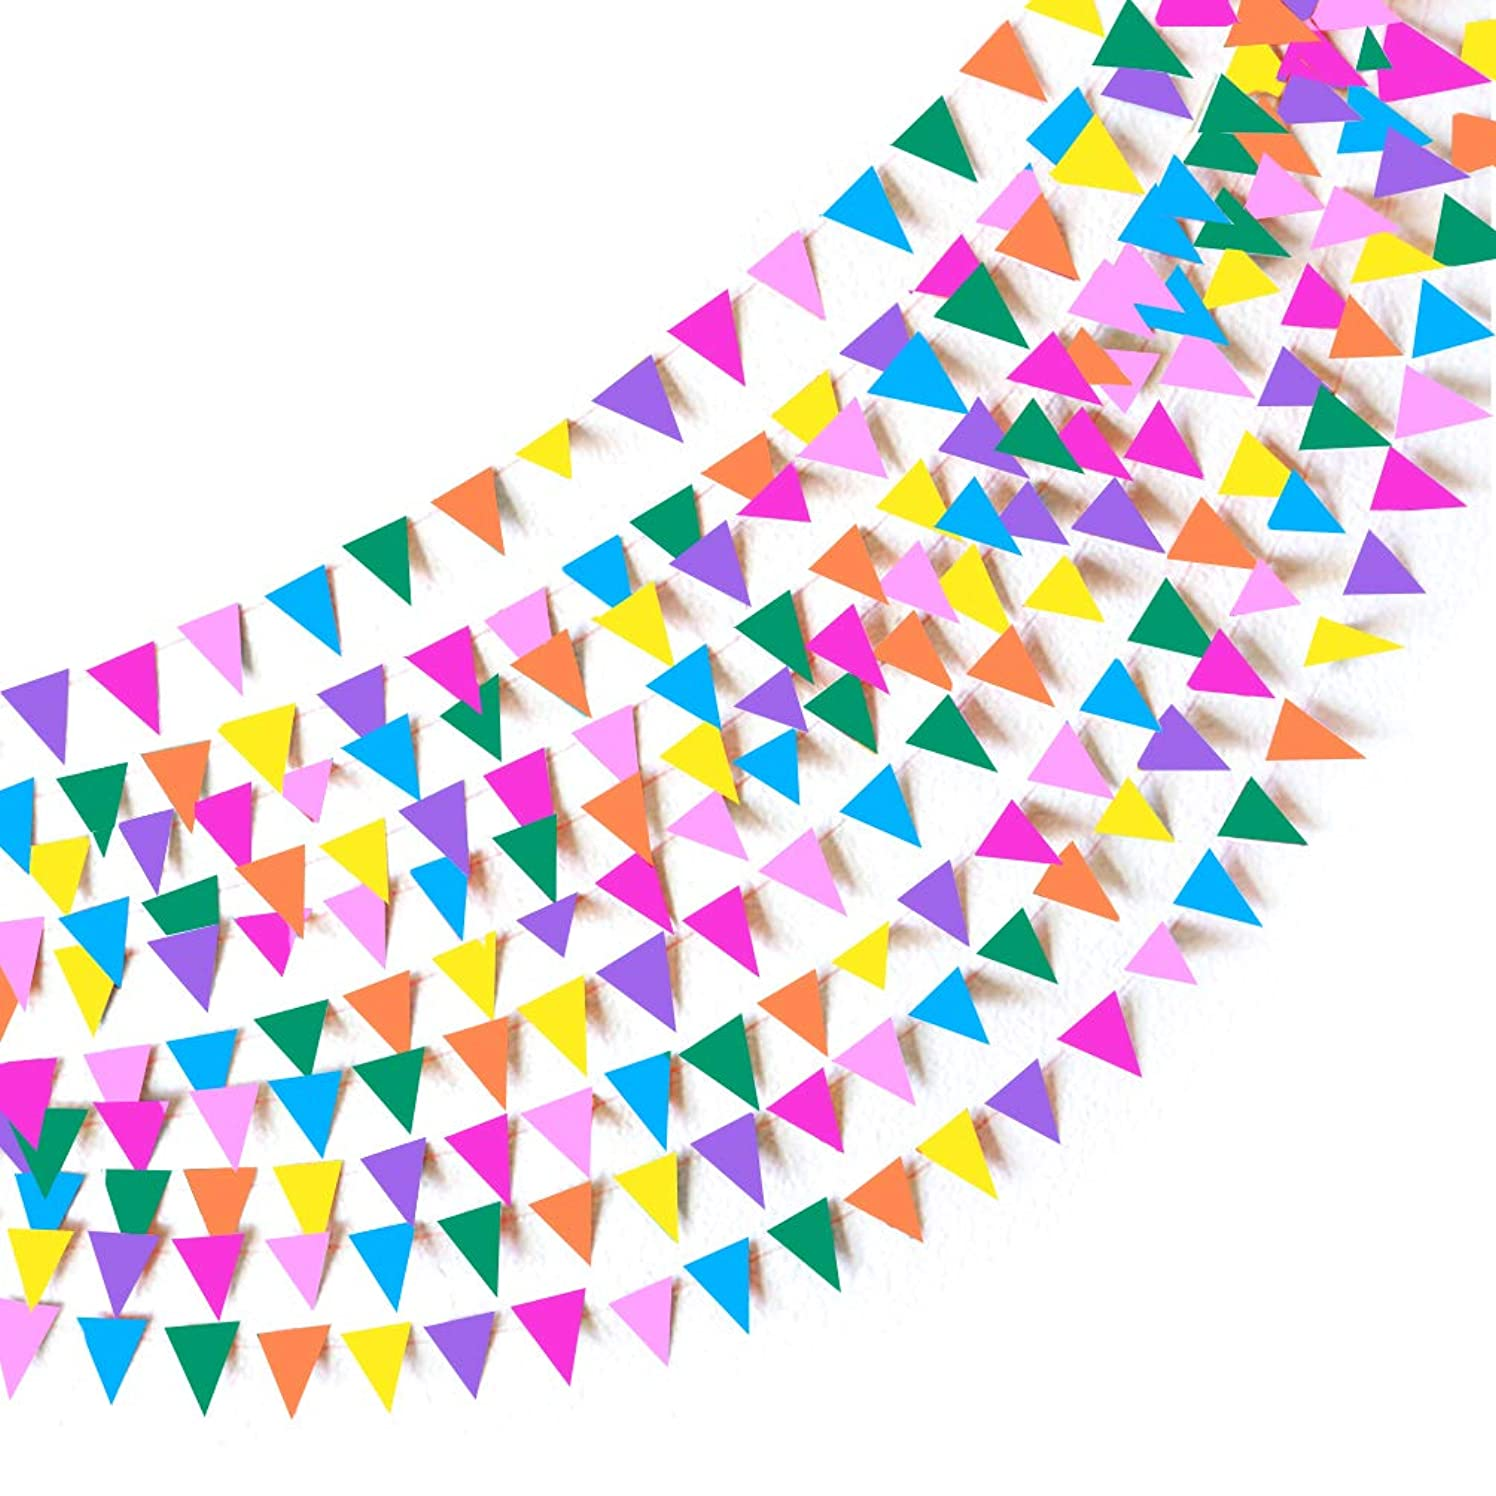 Small Pennant Garland Birthday Paper Party Bunting Banners Decorations Set of 2, Assorted